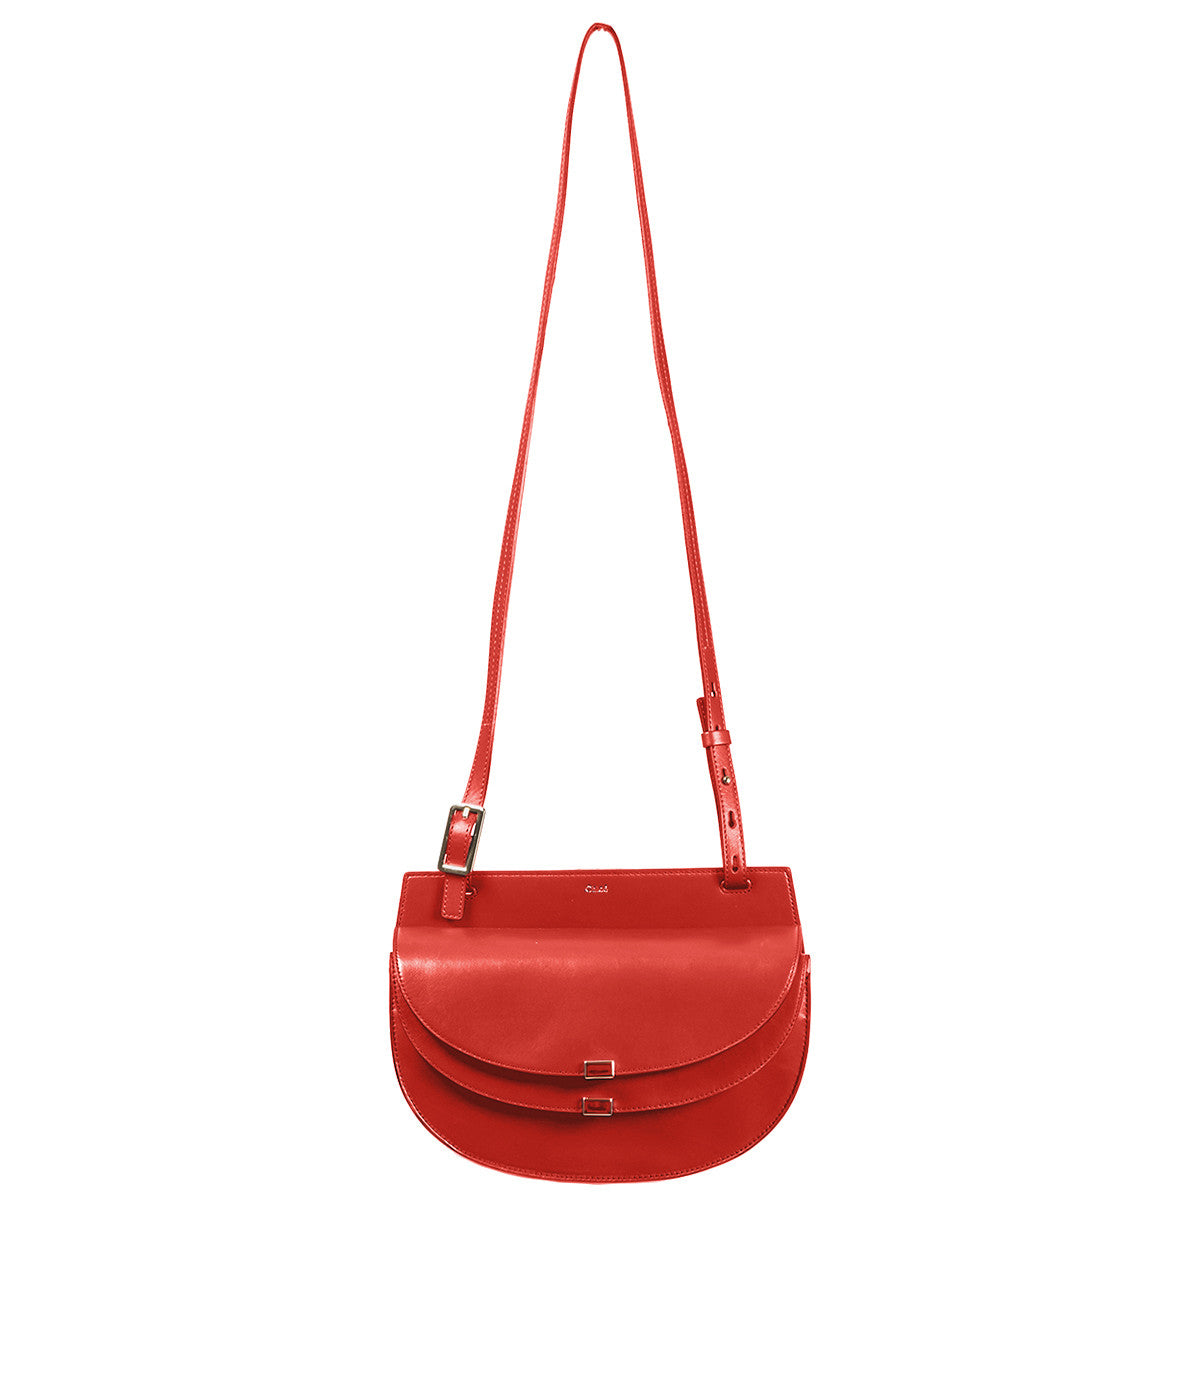 Porte Epaule Shoulder Bag